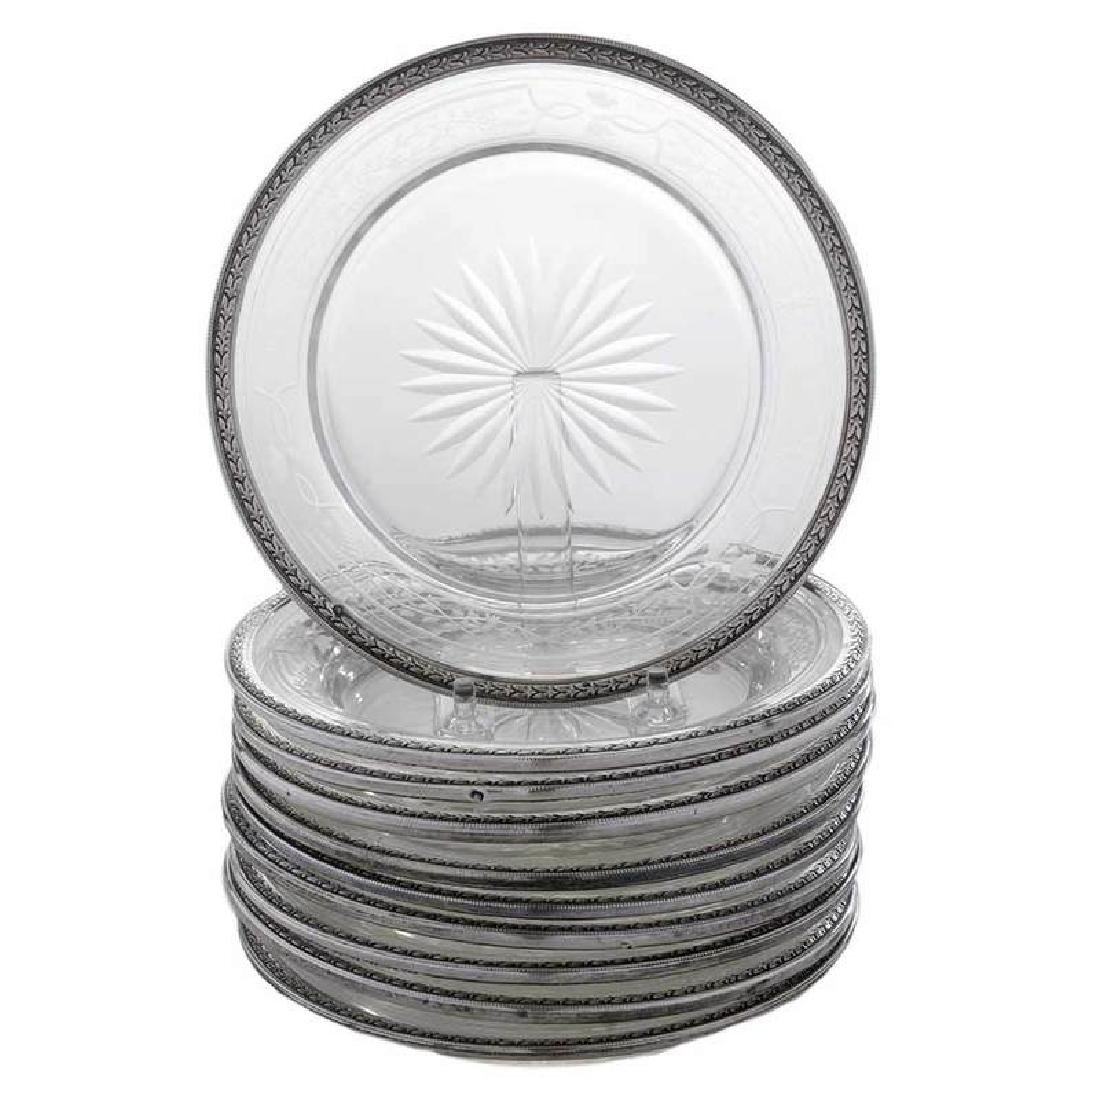 Ten Etched Glass Plates with French Silver Rim